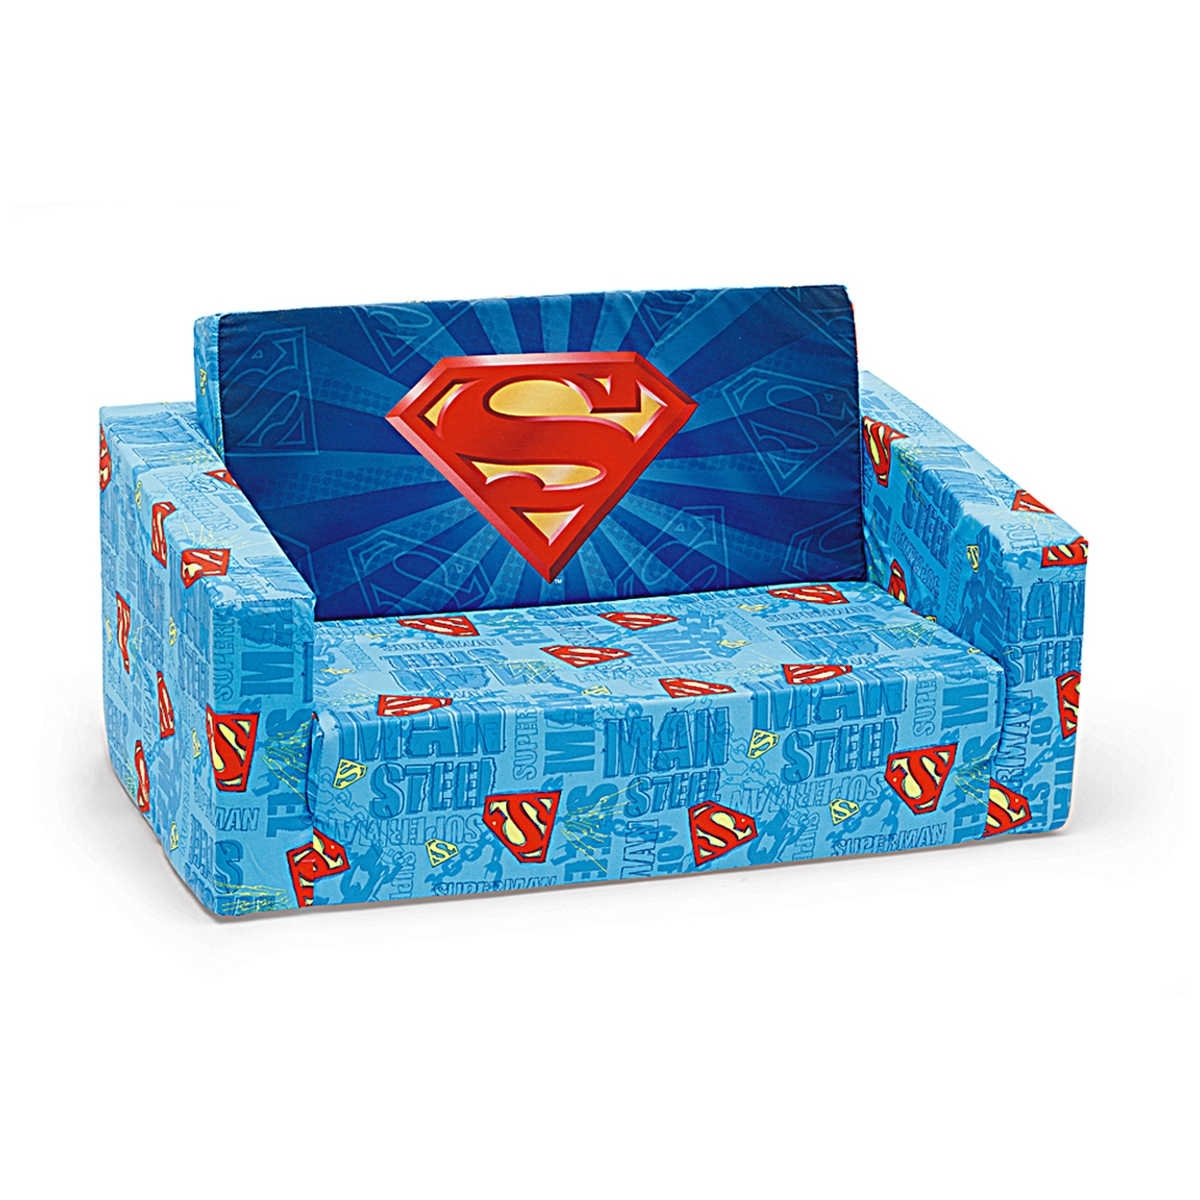 Superman Flip Out Sofa | Functionalities In Flip Out Sofas (Image 9 of 10)